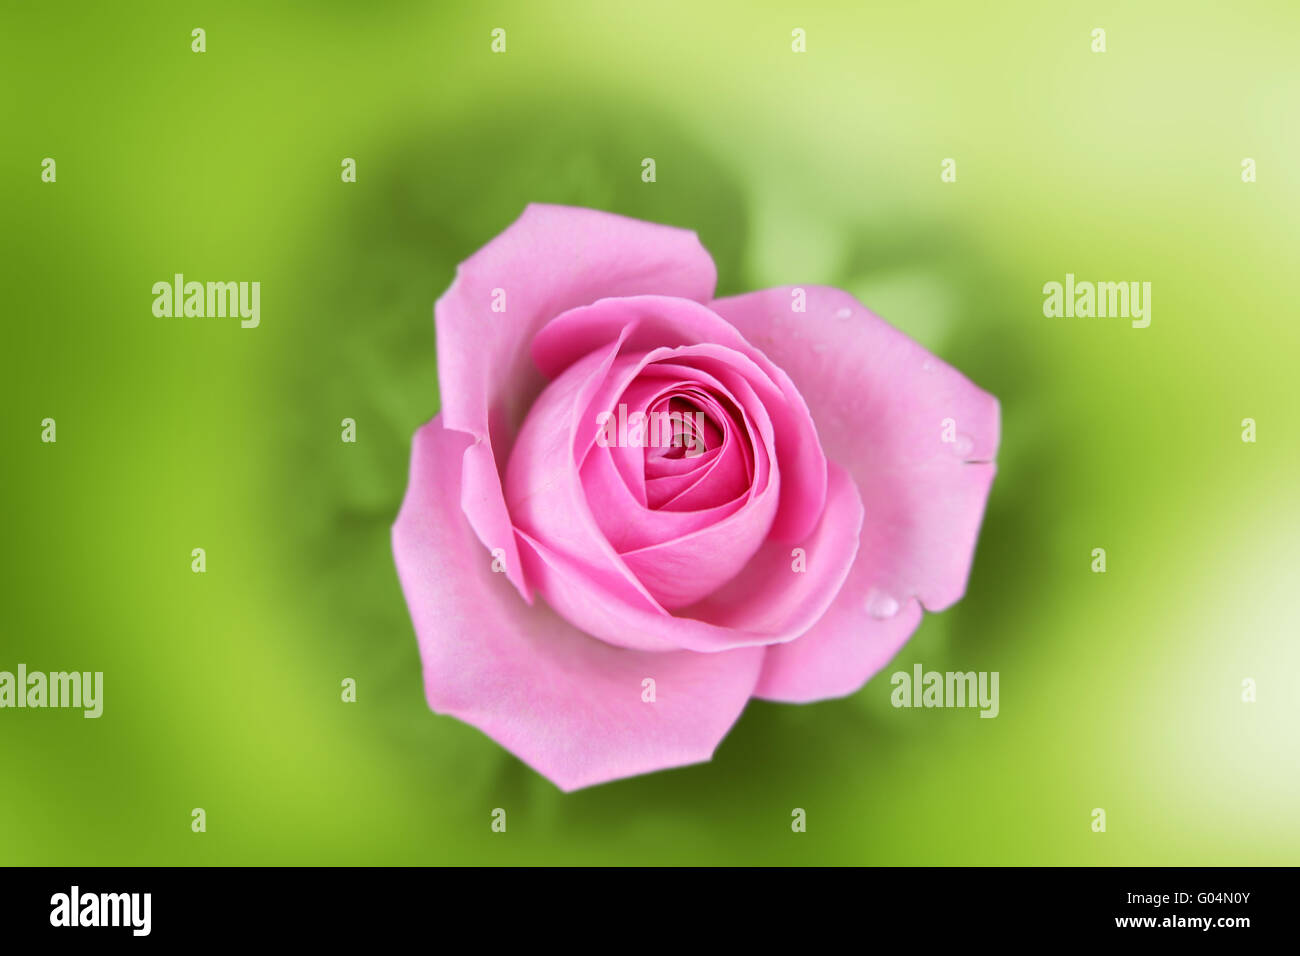 Scarlet rose in an environment of a blurred green background - Stock Image